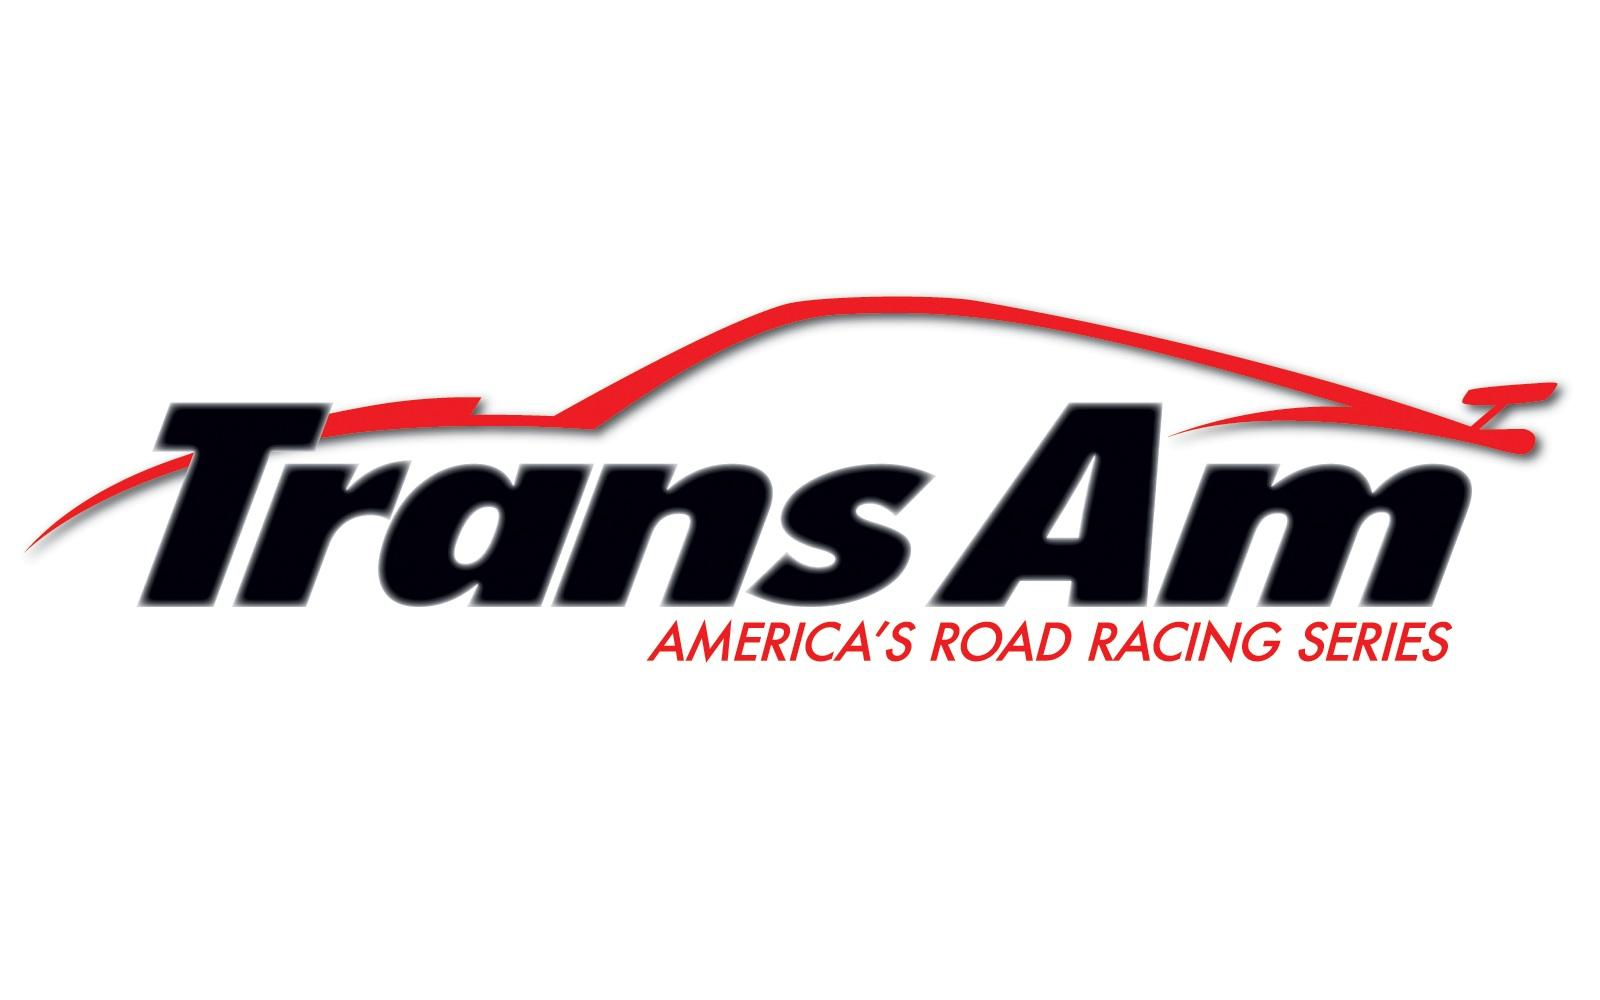 Trans Am Series announces corporate partnership with World Information Systems